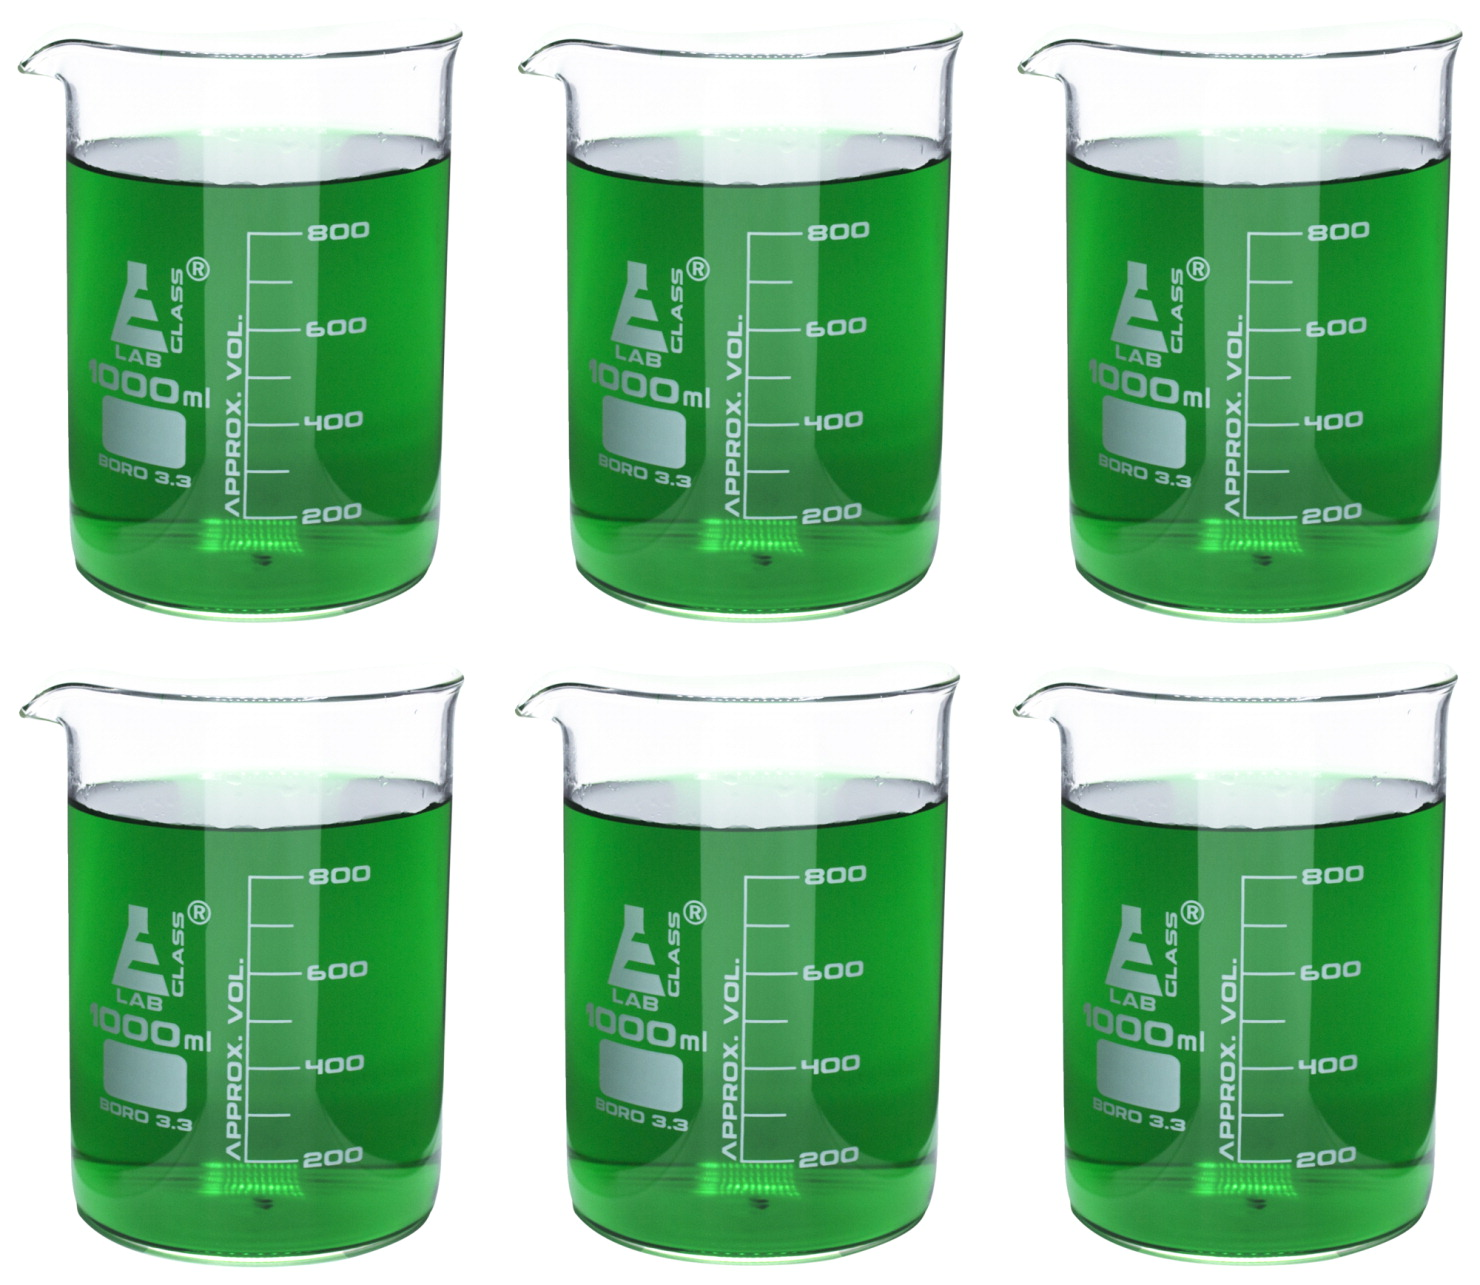 Eisco 1000mL Borosilicate Glass Beakers with Spout, Low Form, Pack of 6